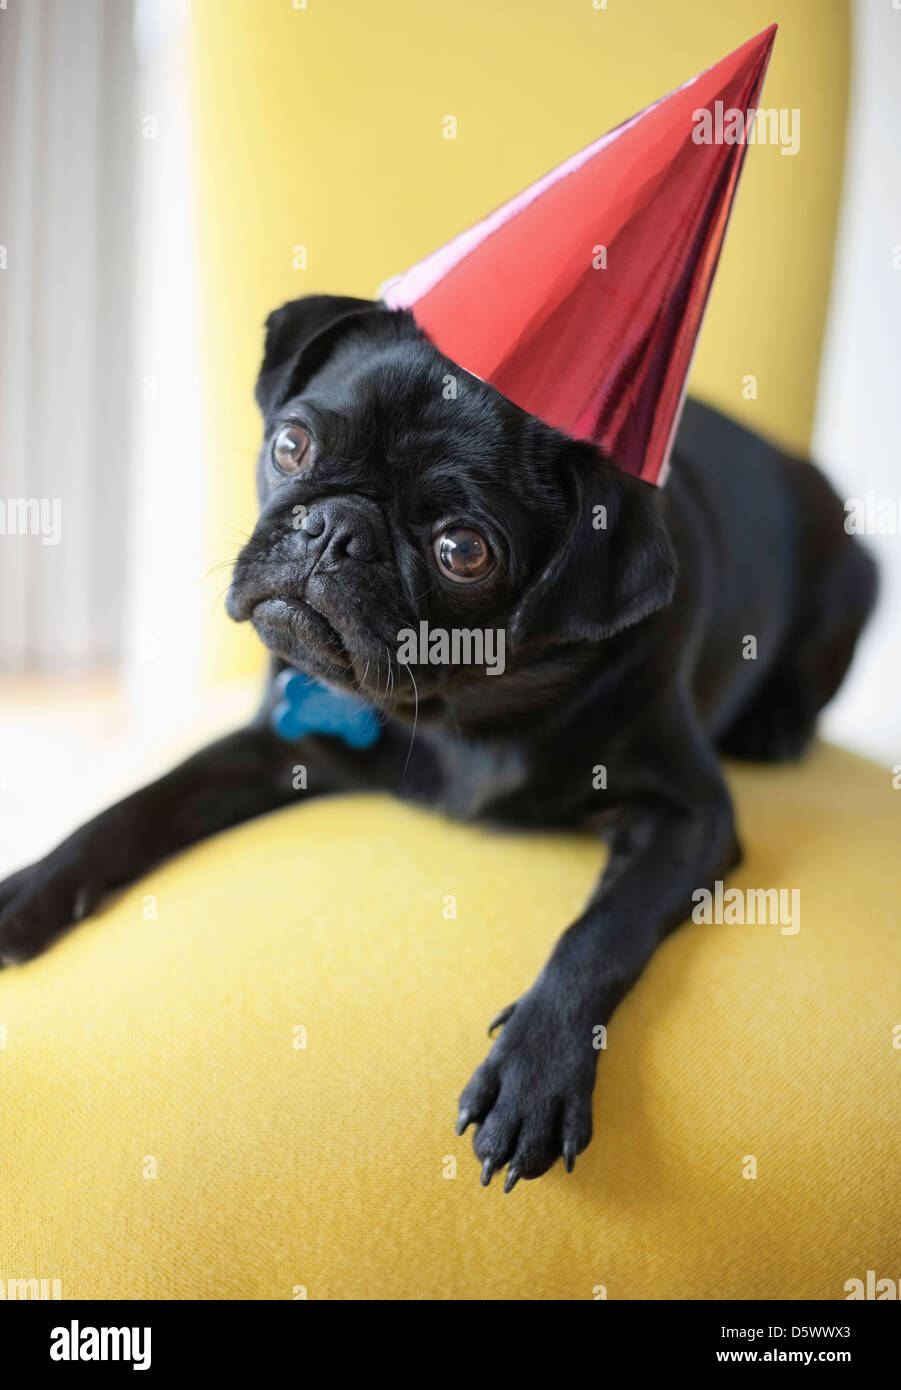 Dog wearing party hat on chair - Stock Image